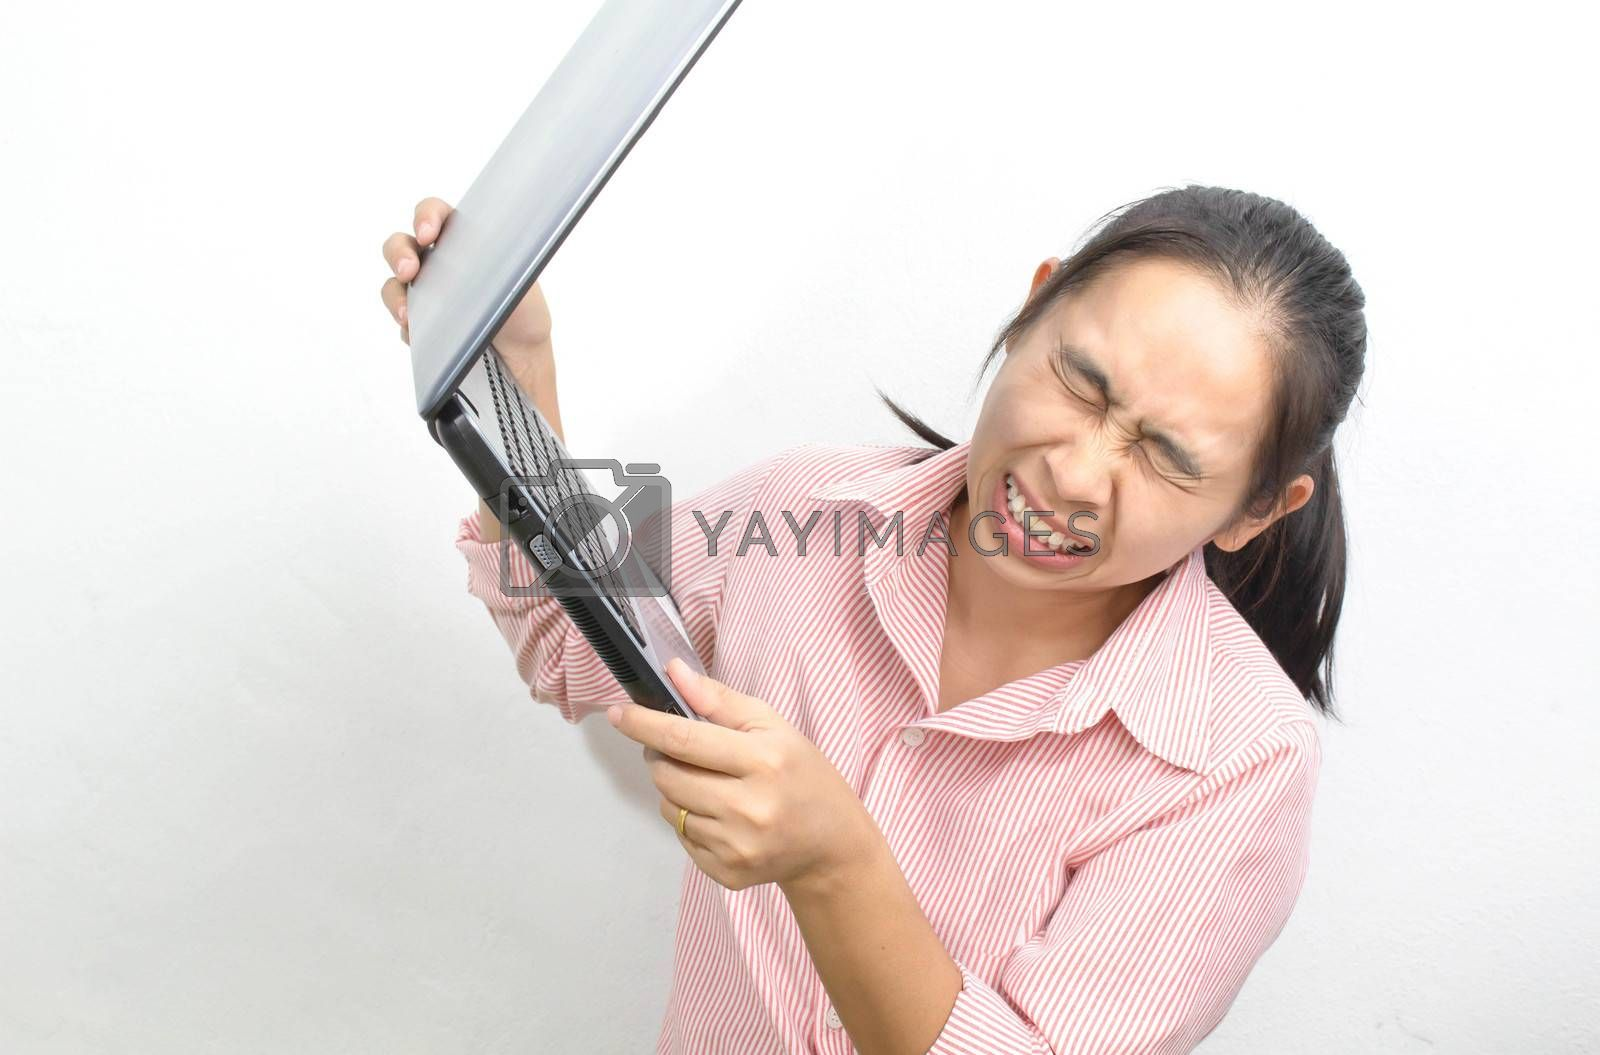 Young angry Asian woman open mouth screaming raising the laptop up to throw it away isolated on a white background. by TEERASAK